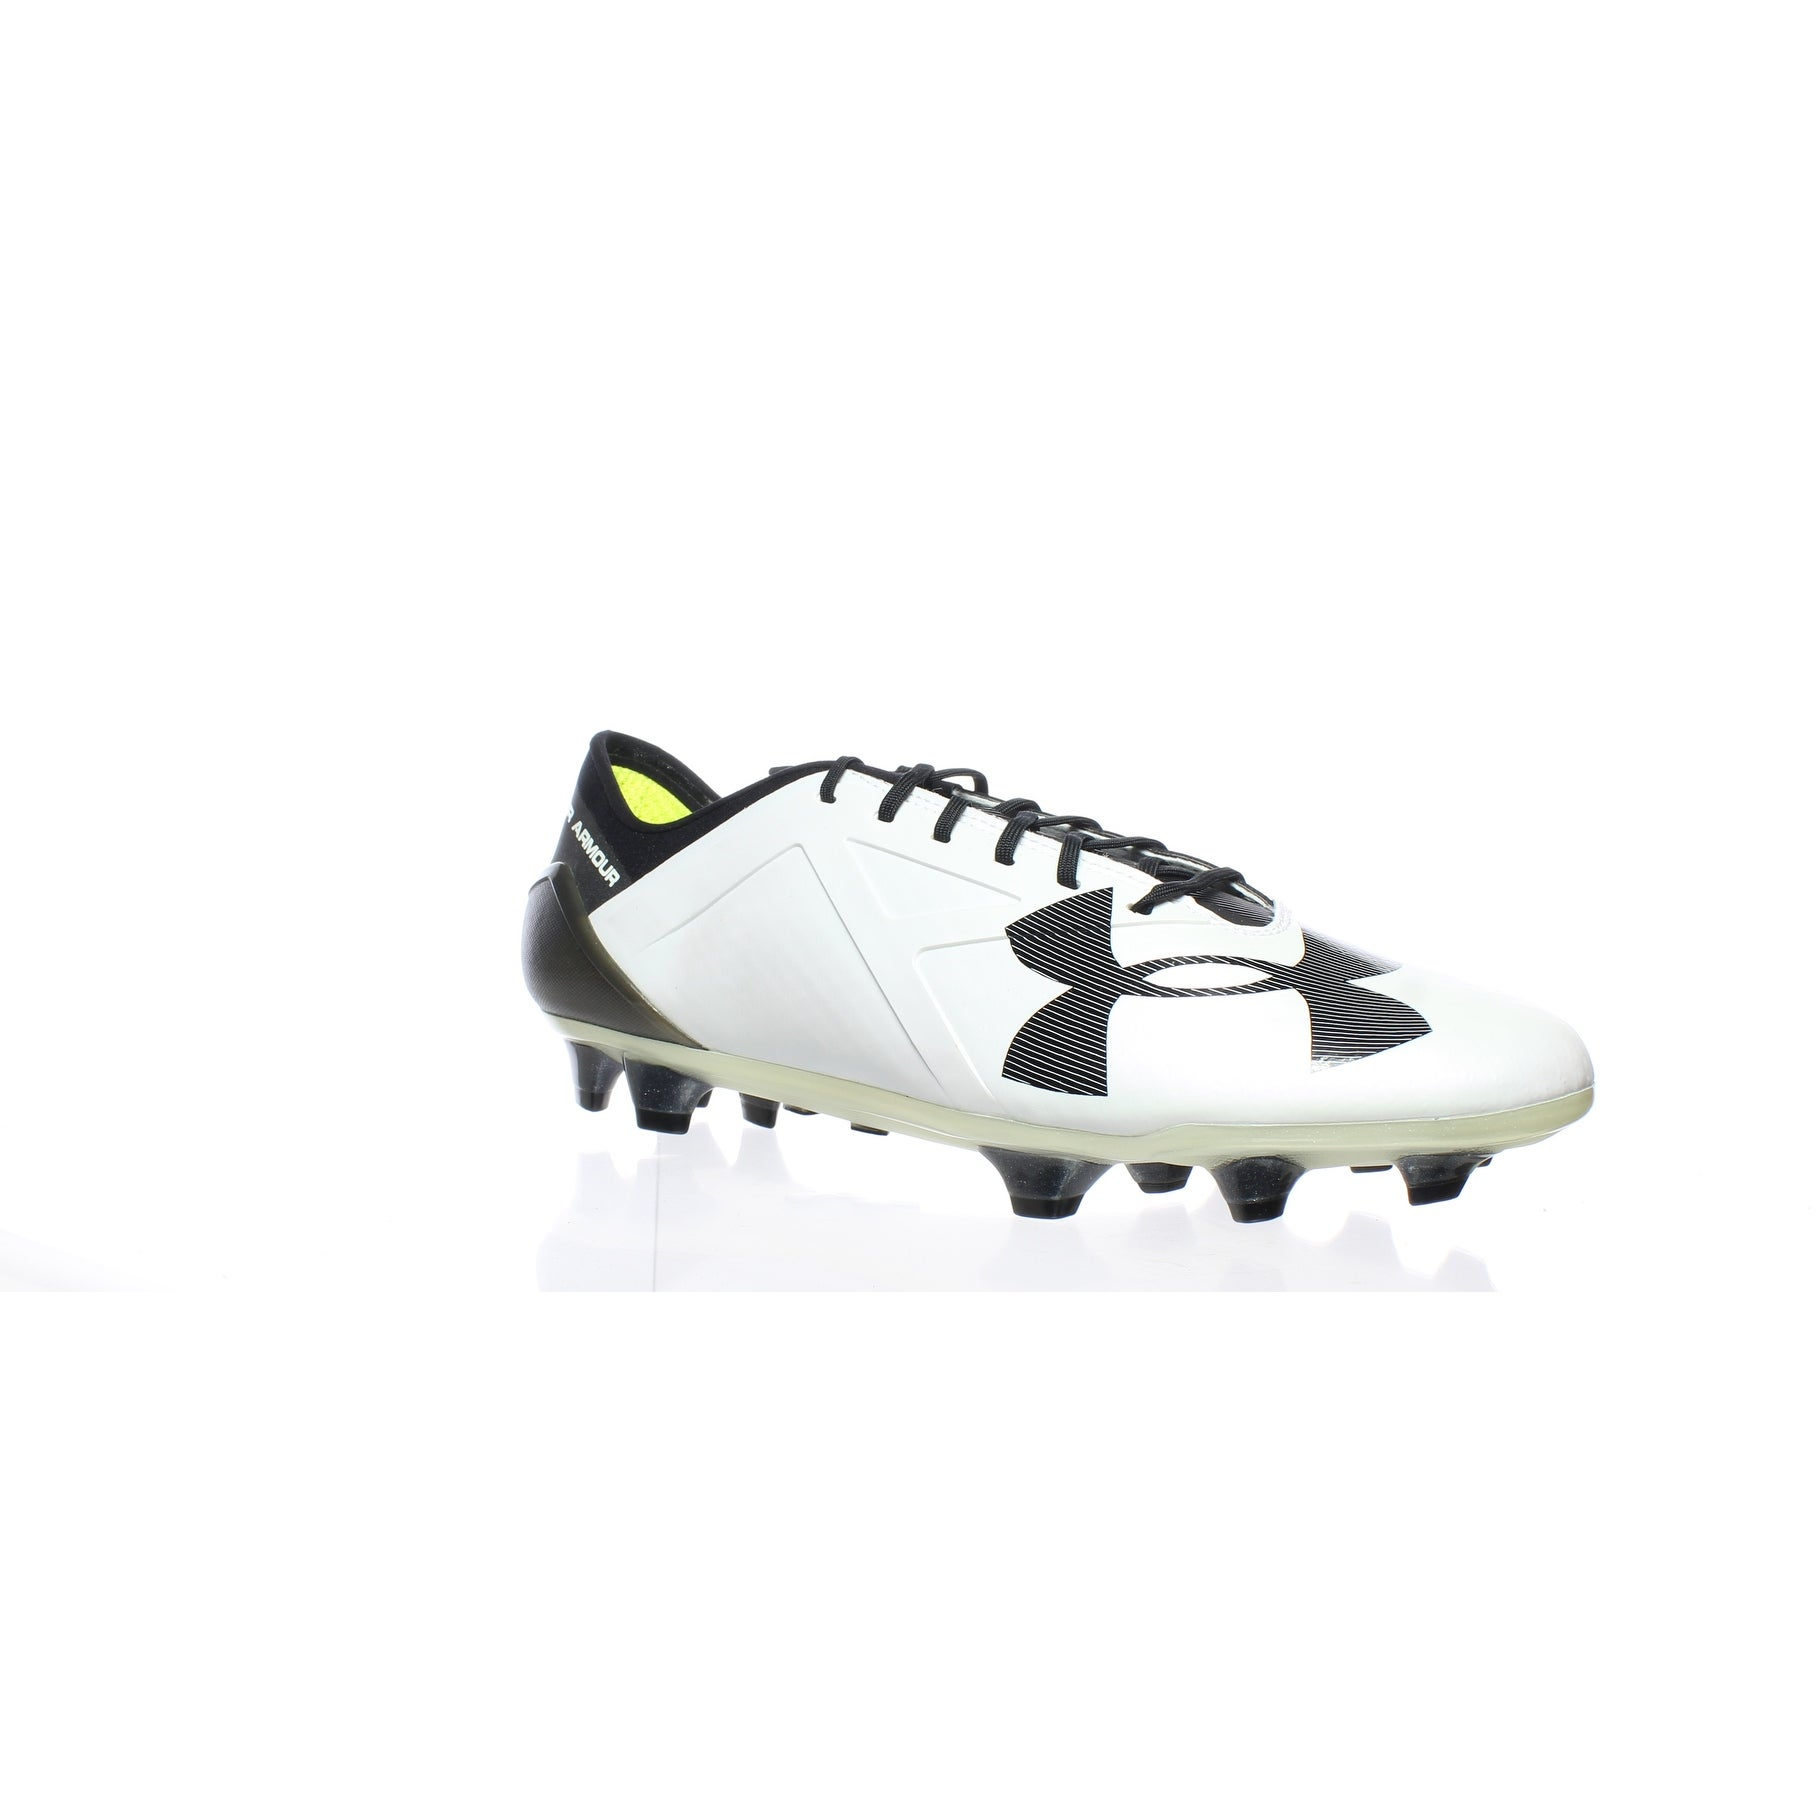 d49e65636 Black Under Armour Men's Shoes   Find Great Shoes Deals Shopping at  Overstock